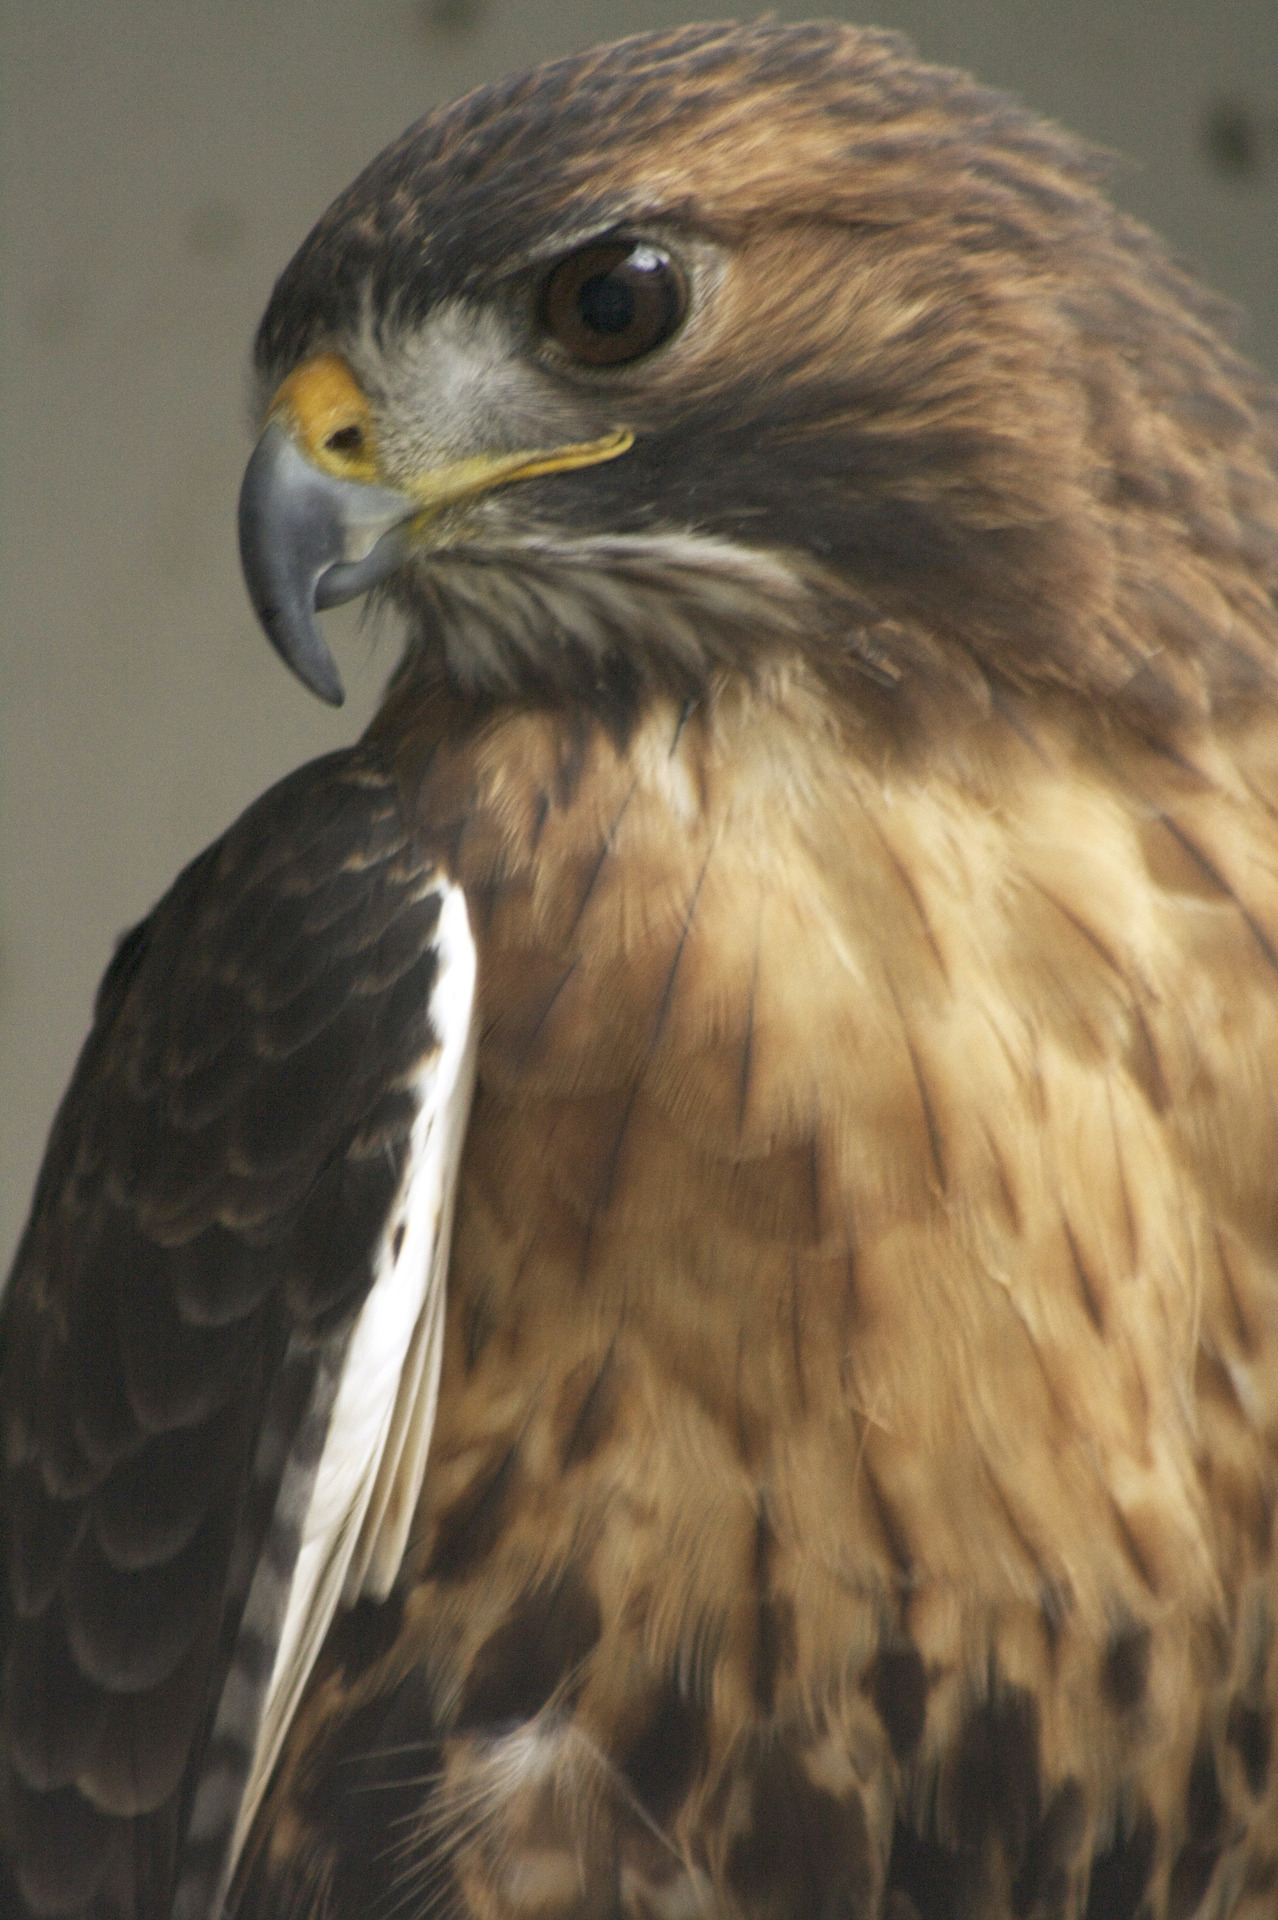 July 25, 2012 The Red-tailed Hawk is incredibly versatile. From small woodlots to roadsides (have you seen any on or near campus lately?), their distinctive red or rufous tail makes them a delight to see wherever you may be. —photo by Kaitlin Pope